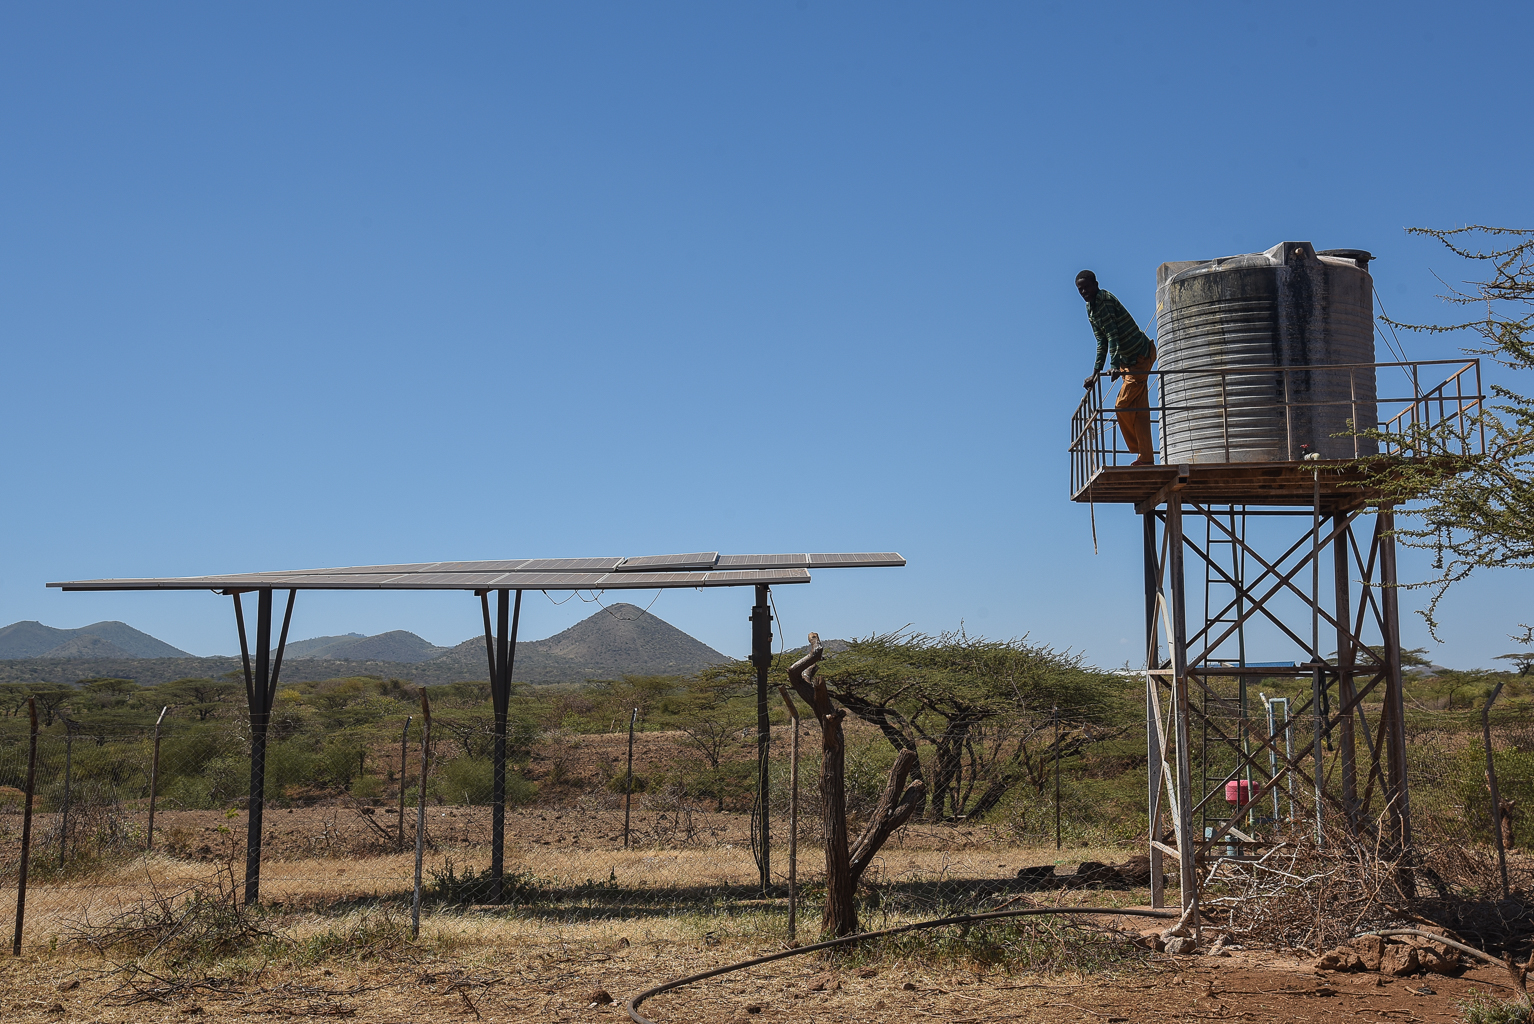 Bore hole with solar powered pump